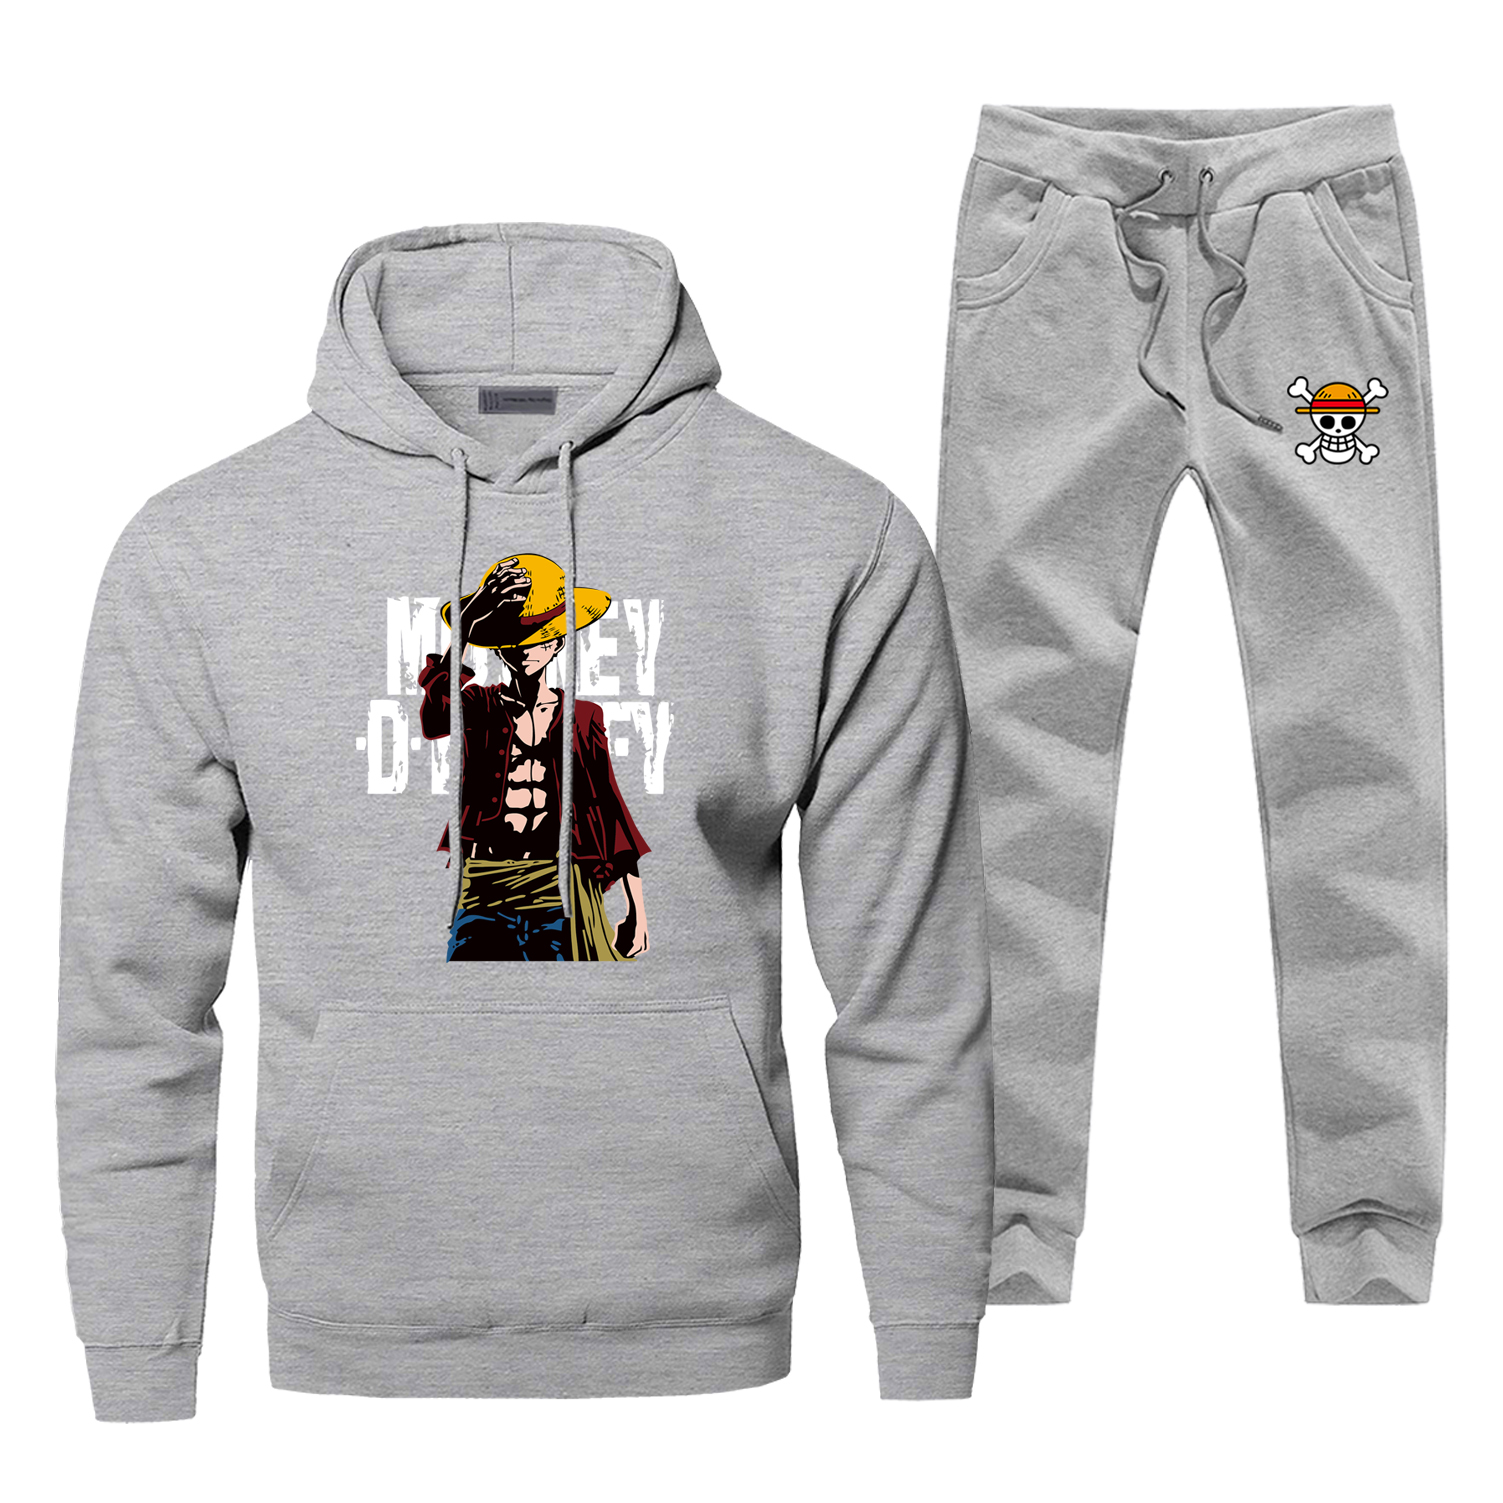 One Piece Hoodies Pants Sets Men Luffy Suit Tracksuit 2 Piece Japan Anime Tops Pant Sweatshirt Sweatpants Sportswear Autumn Set